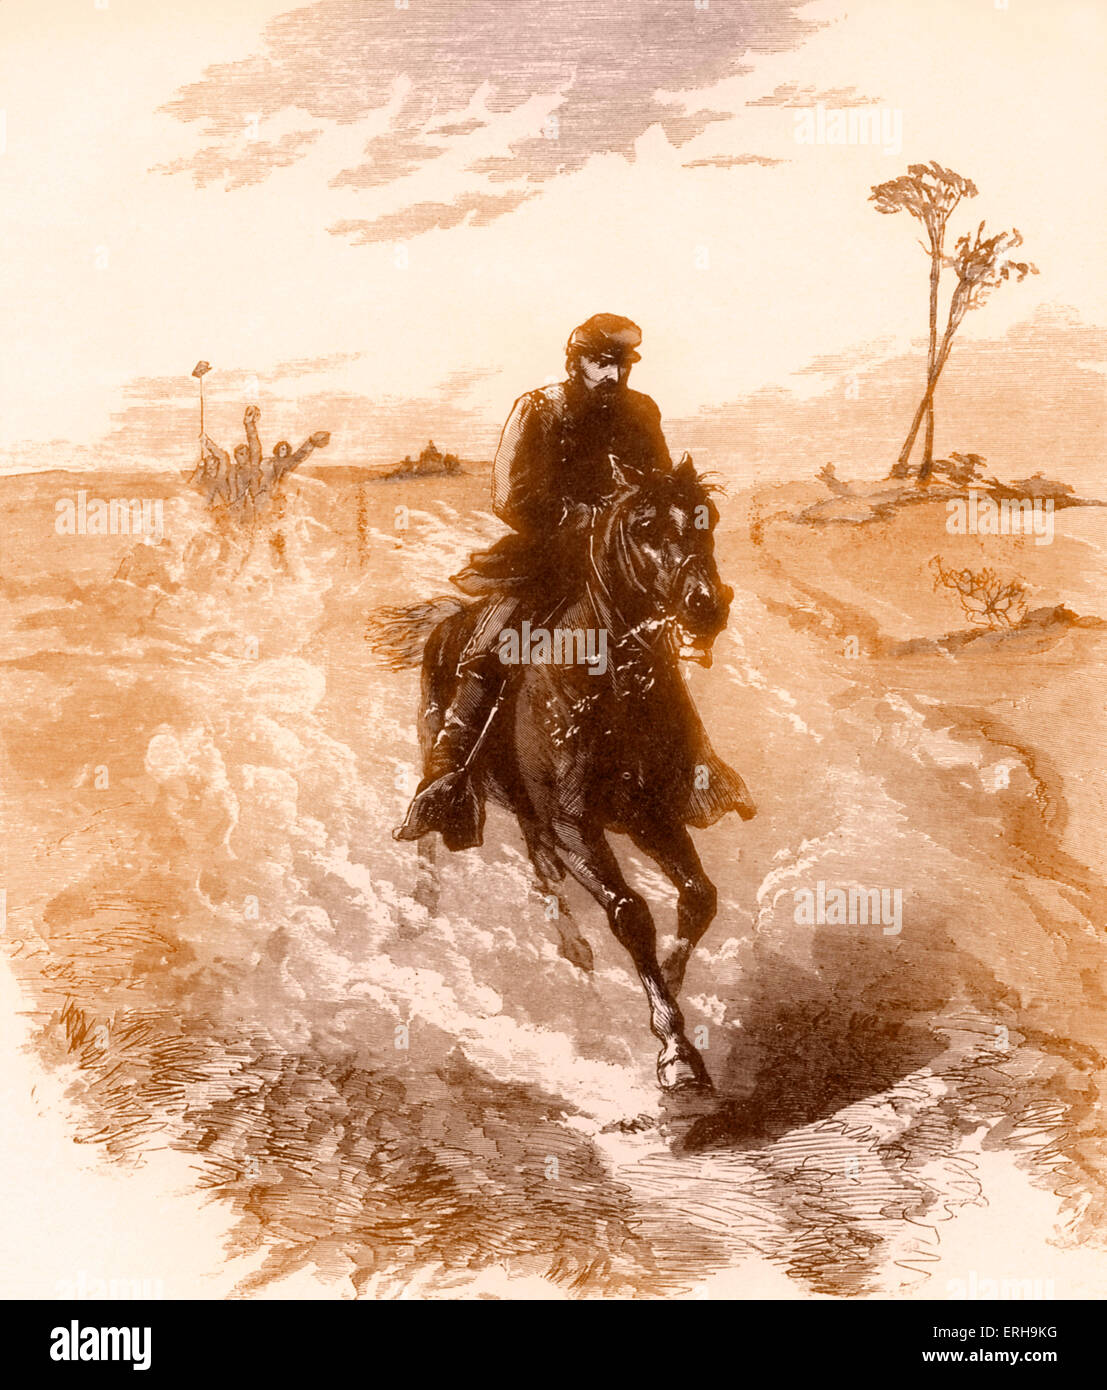 American Civil War Union general Philip Sheridan rides to the front. Illustration by Sol Eytinge (1833-1905), 1860s. - Stock Image